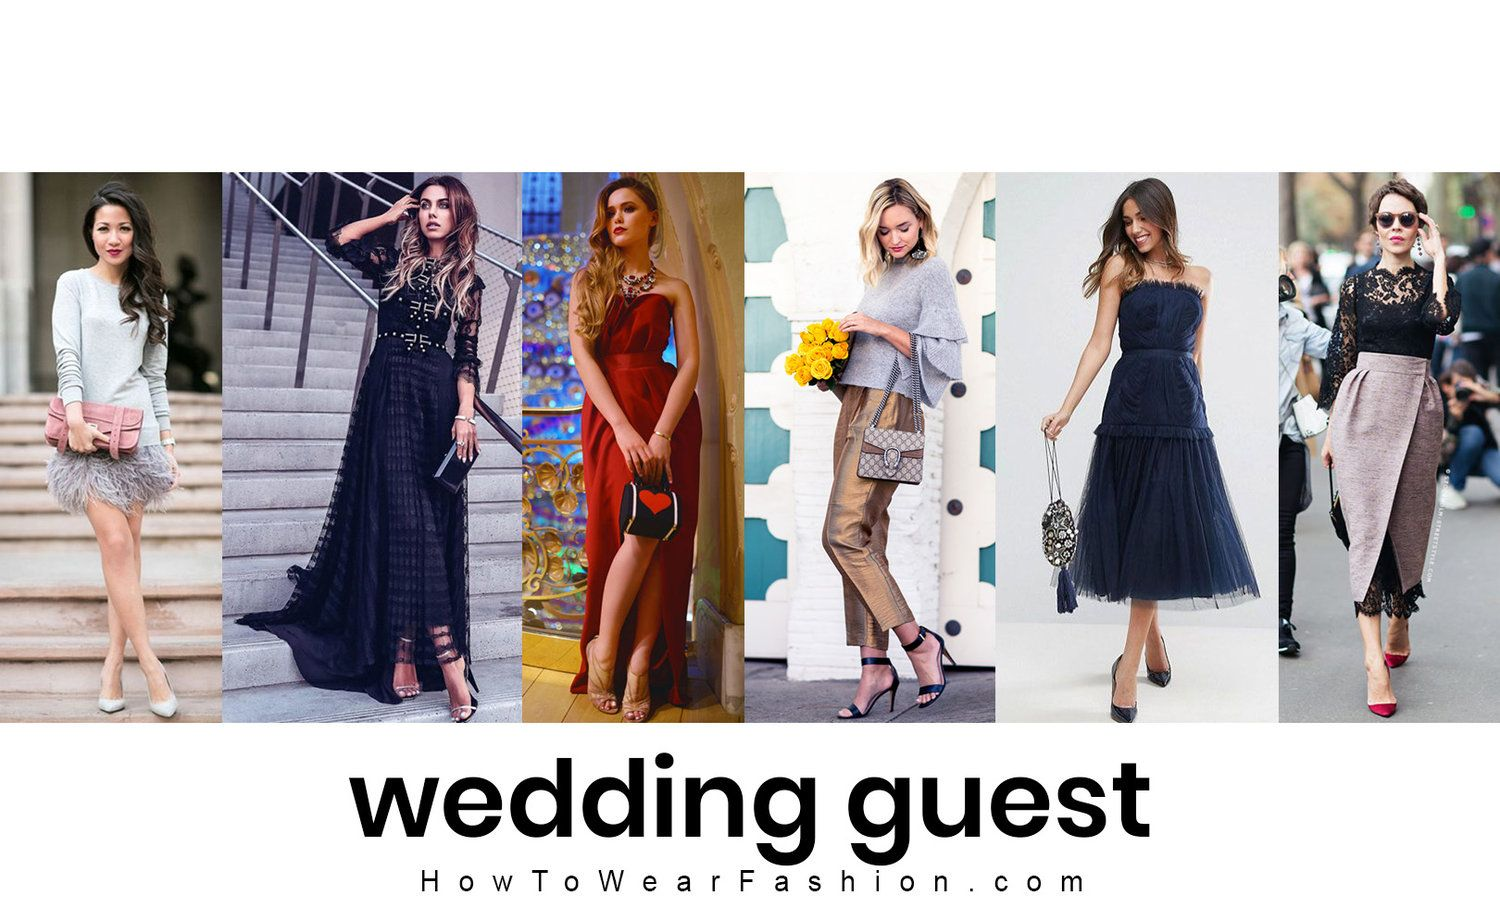 bd0e13ac9f7 What to wear for attending a winter wedding - here s how to style your  wedding guest outfit in December